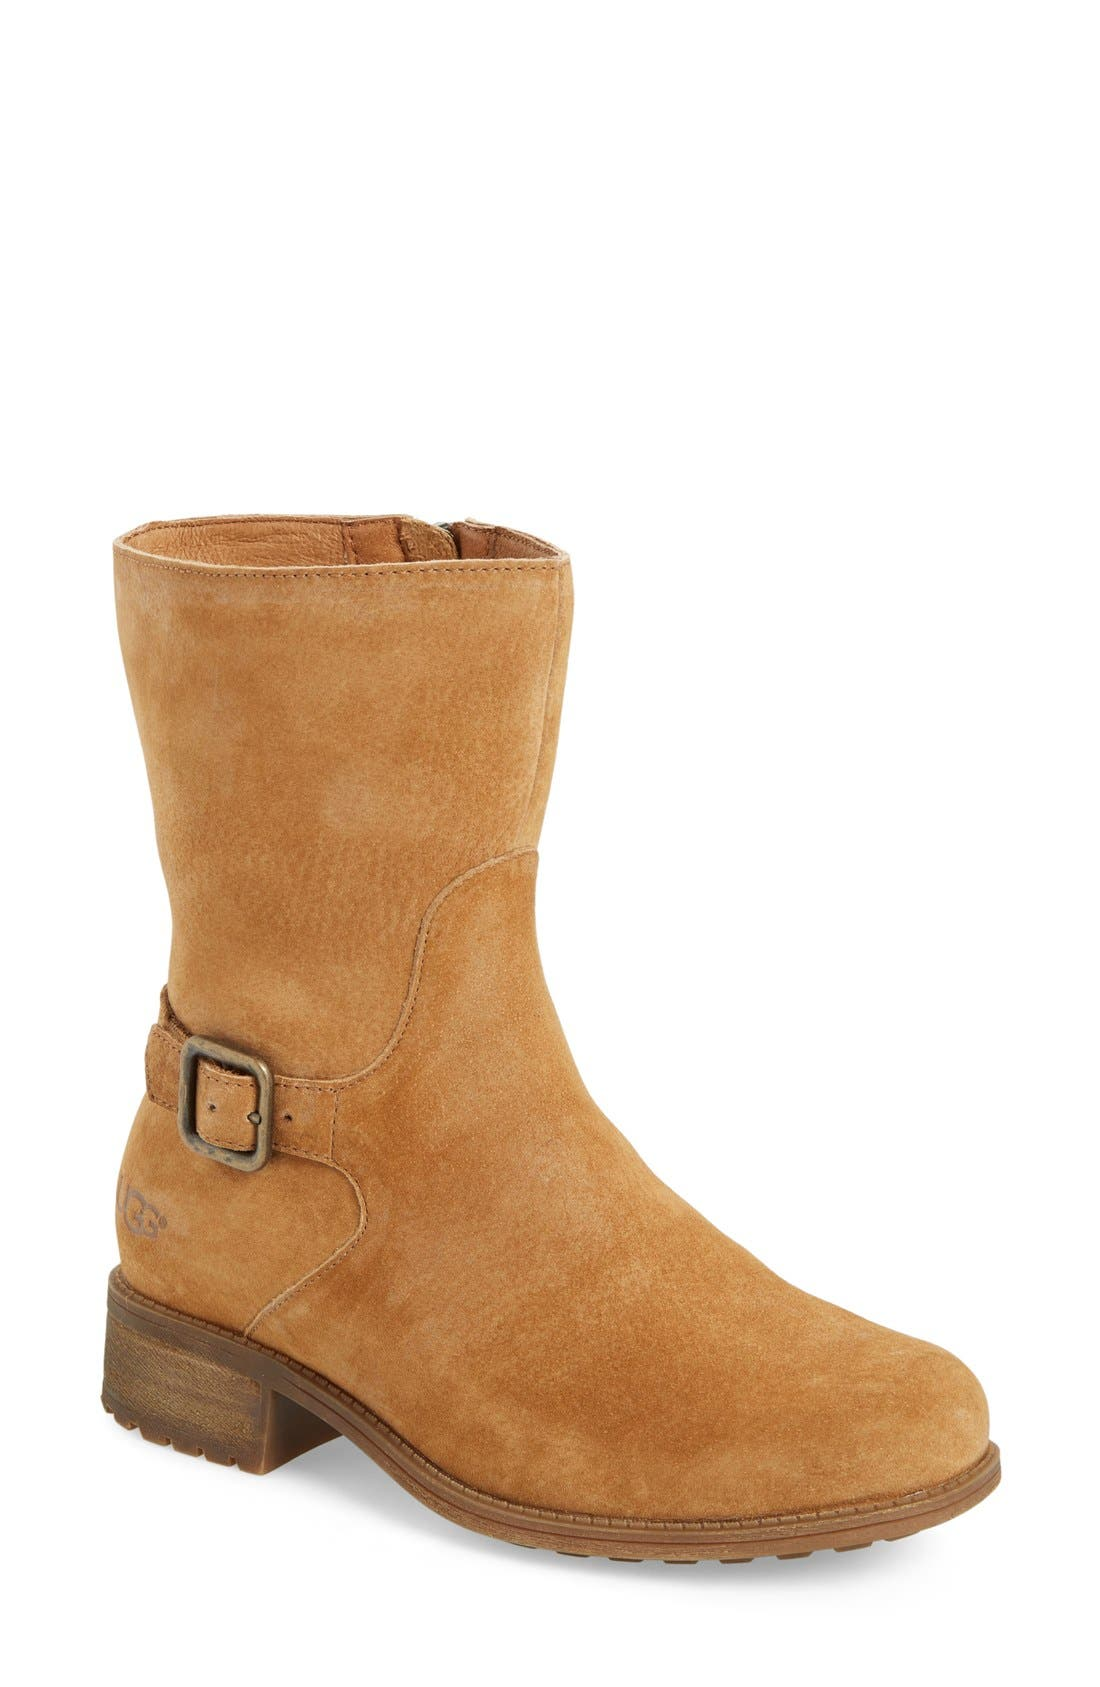 Main Image - UGG® Keppler Genuine Shearling Lined Moto Boot (Women)